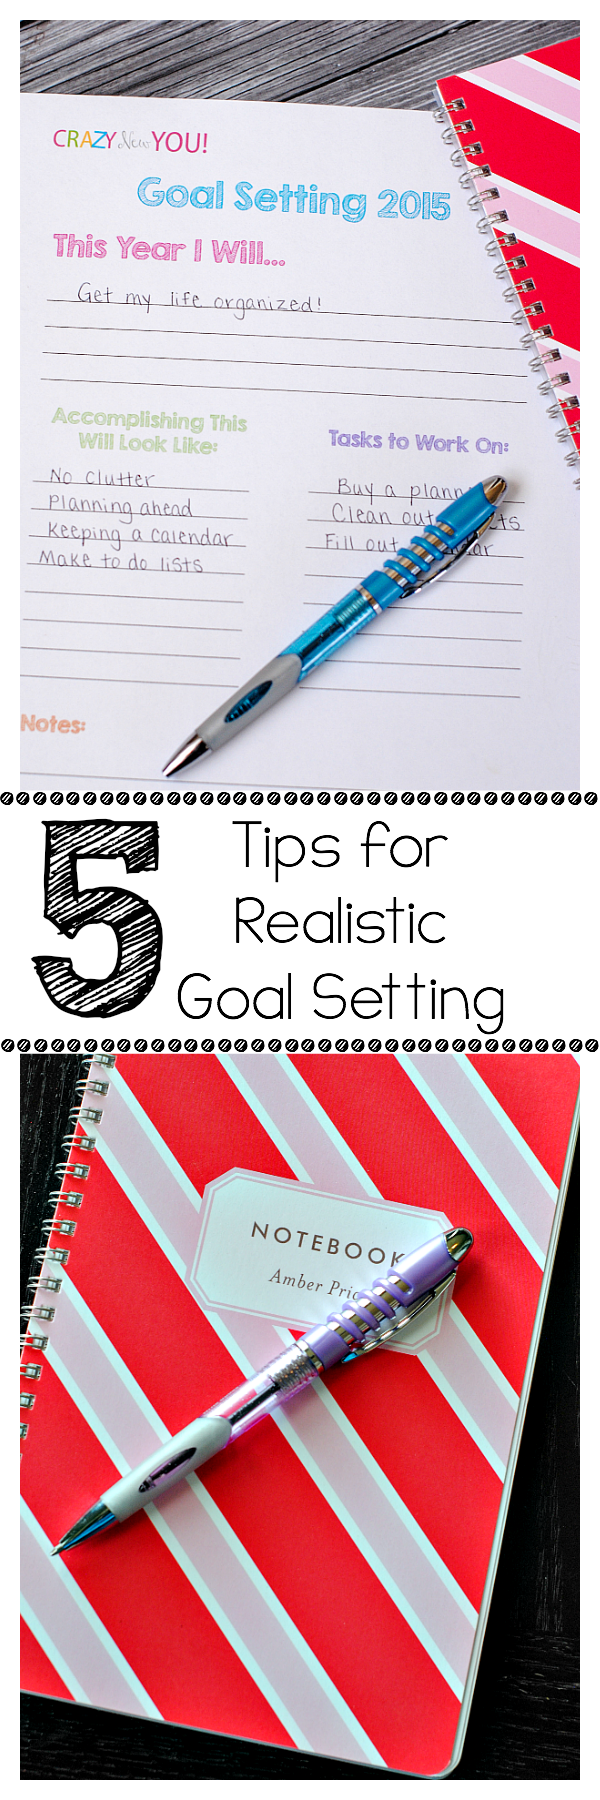 Tips for Setting & Actually Accomplishing Your Goals This Year!